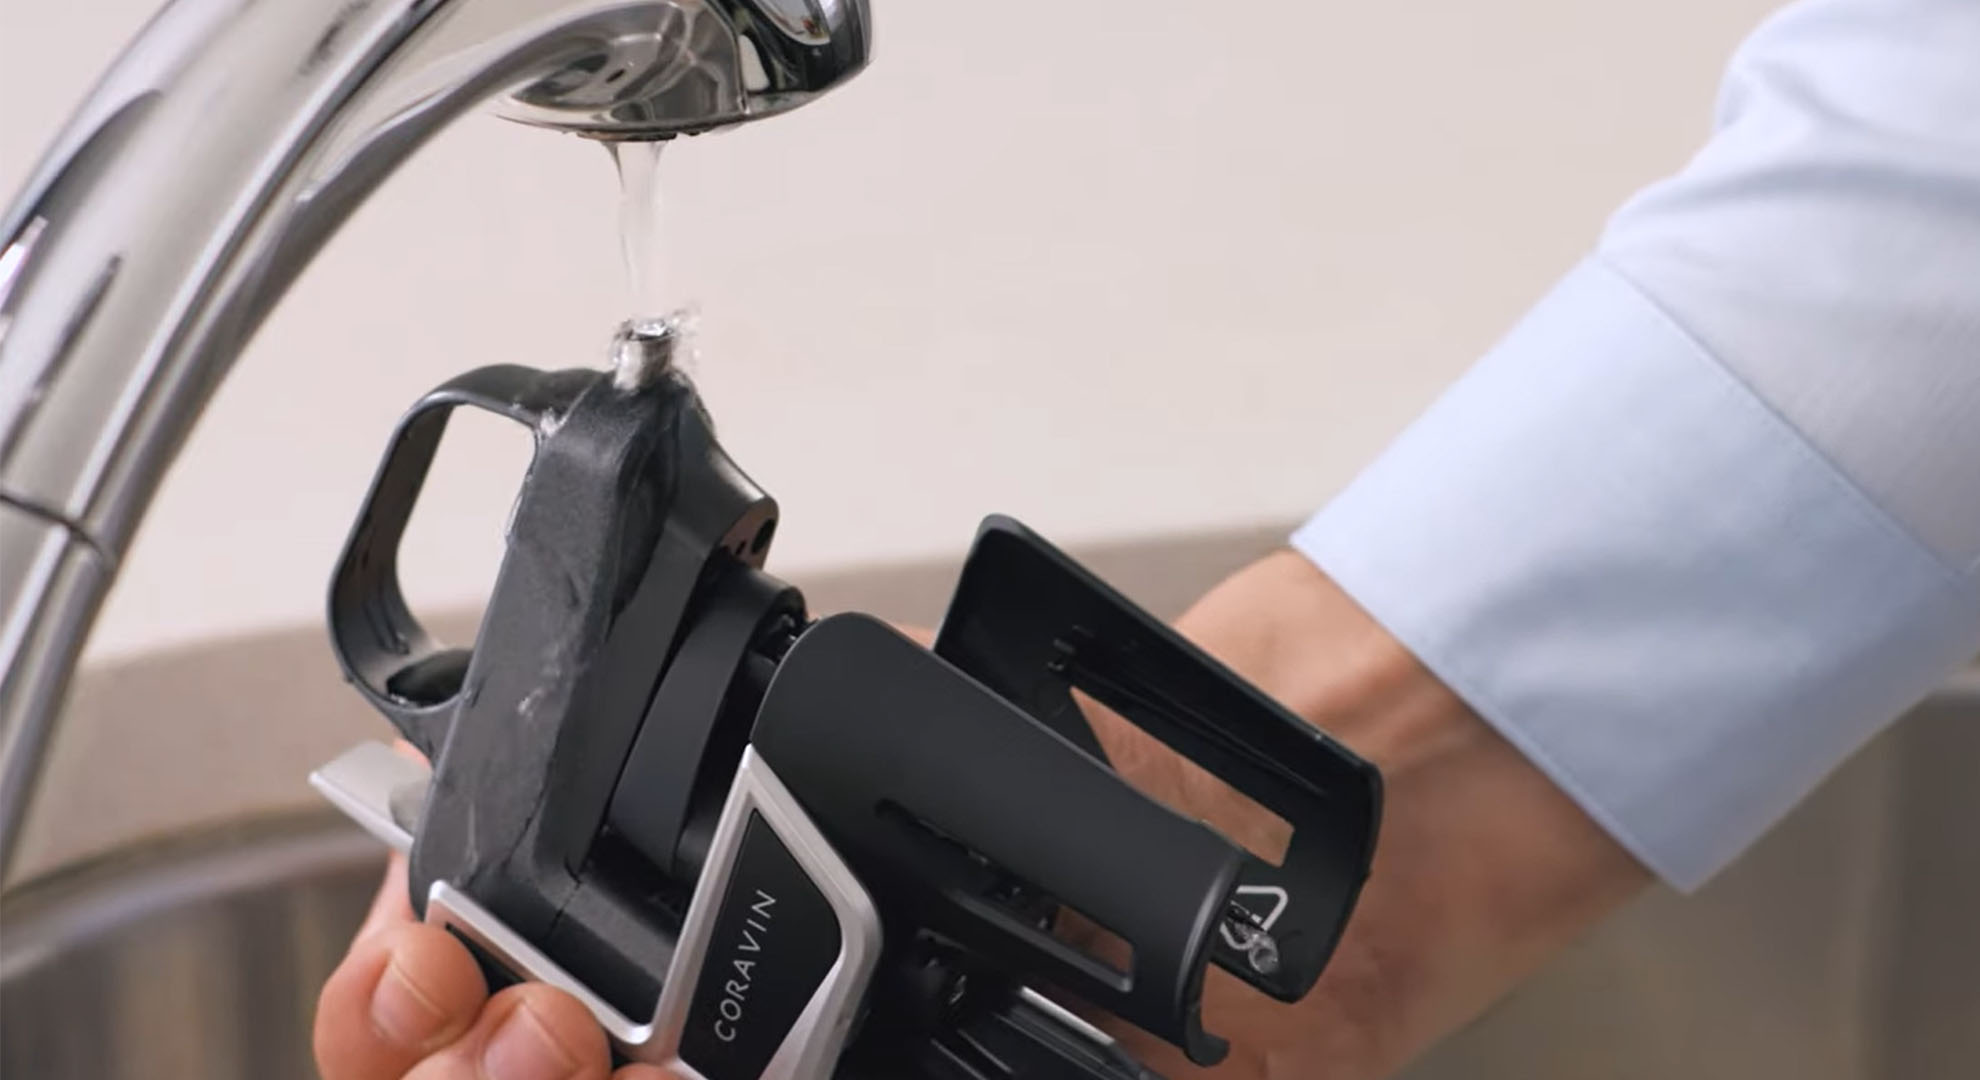 Coravin Wine Preservation System is held under a running faucet